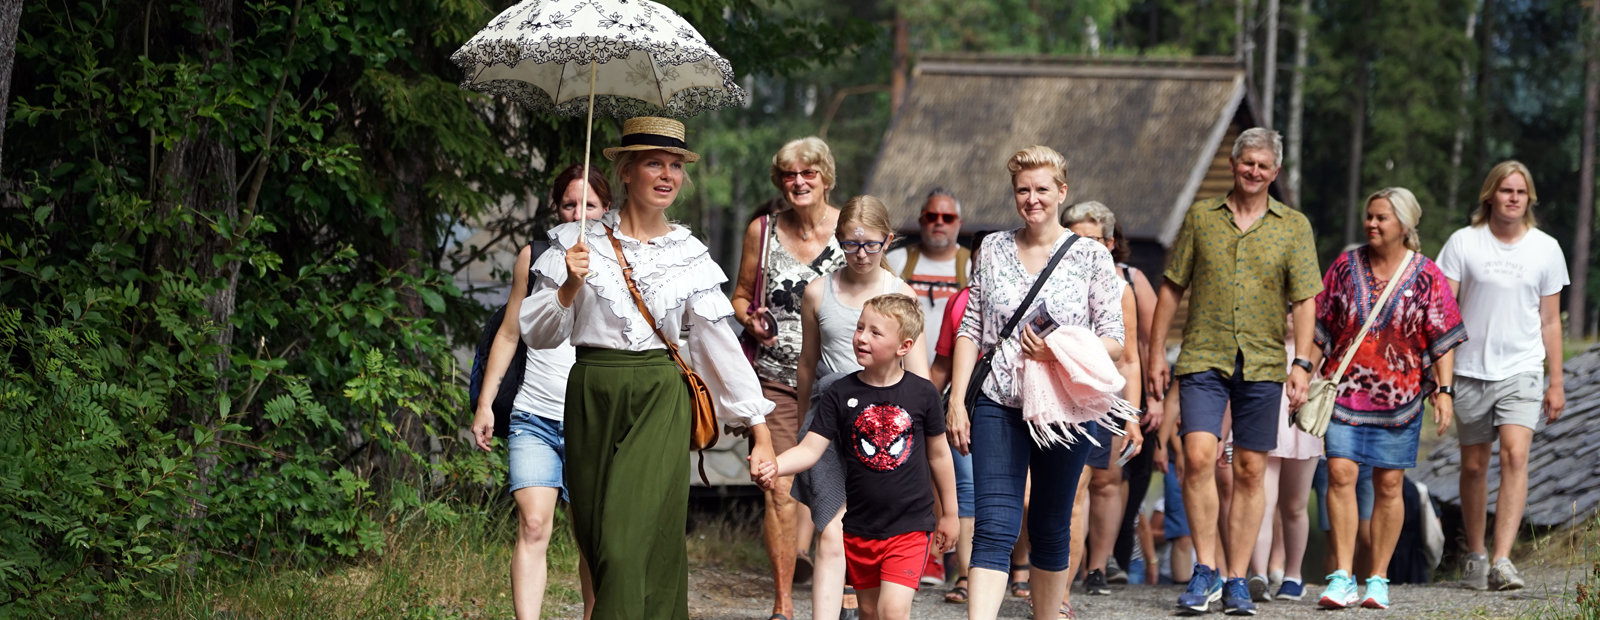 An Engelsk fine lady i historic costume and an umbrella with a group of visitors.